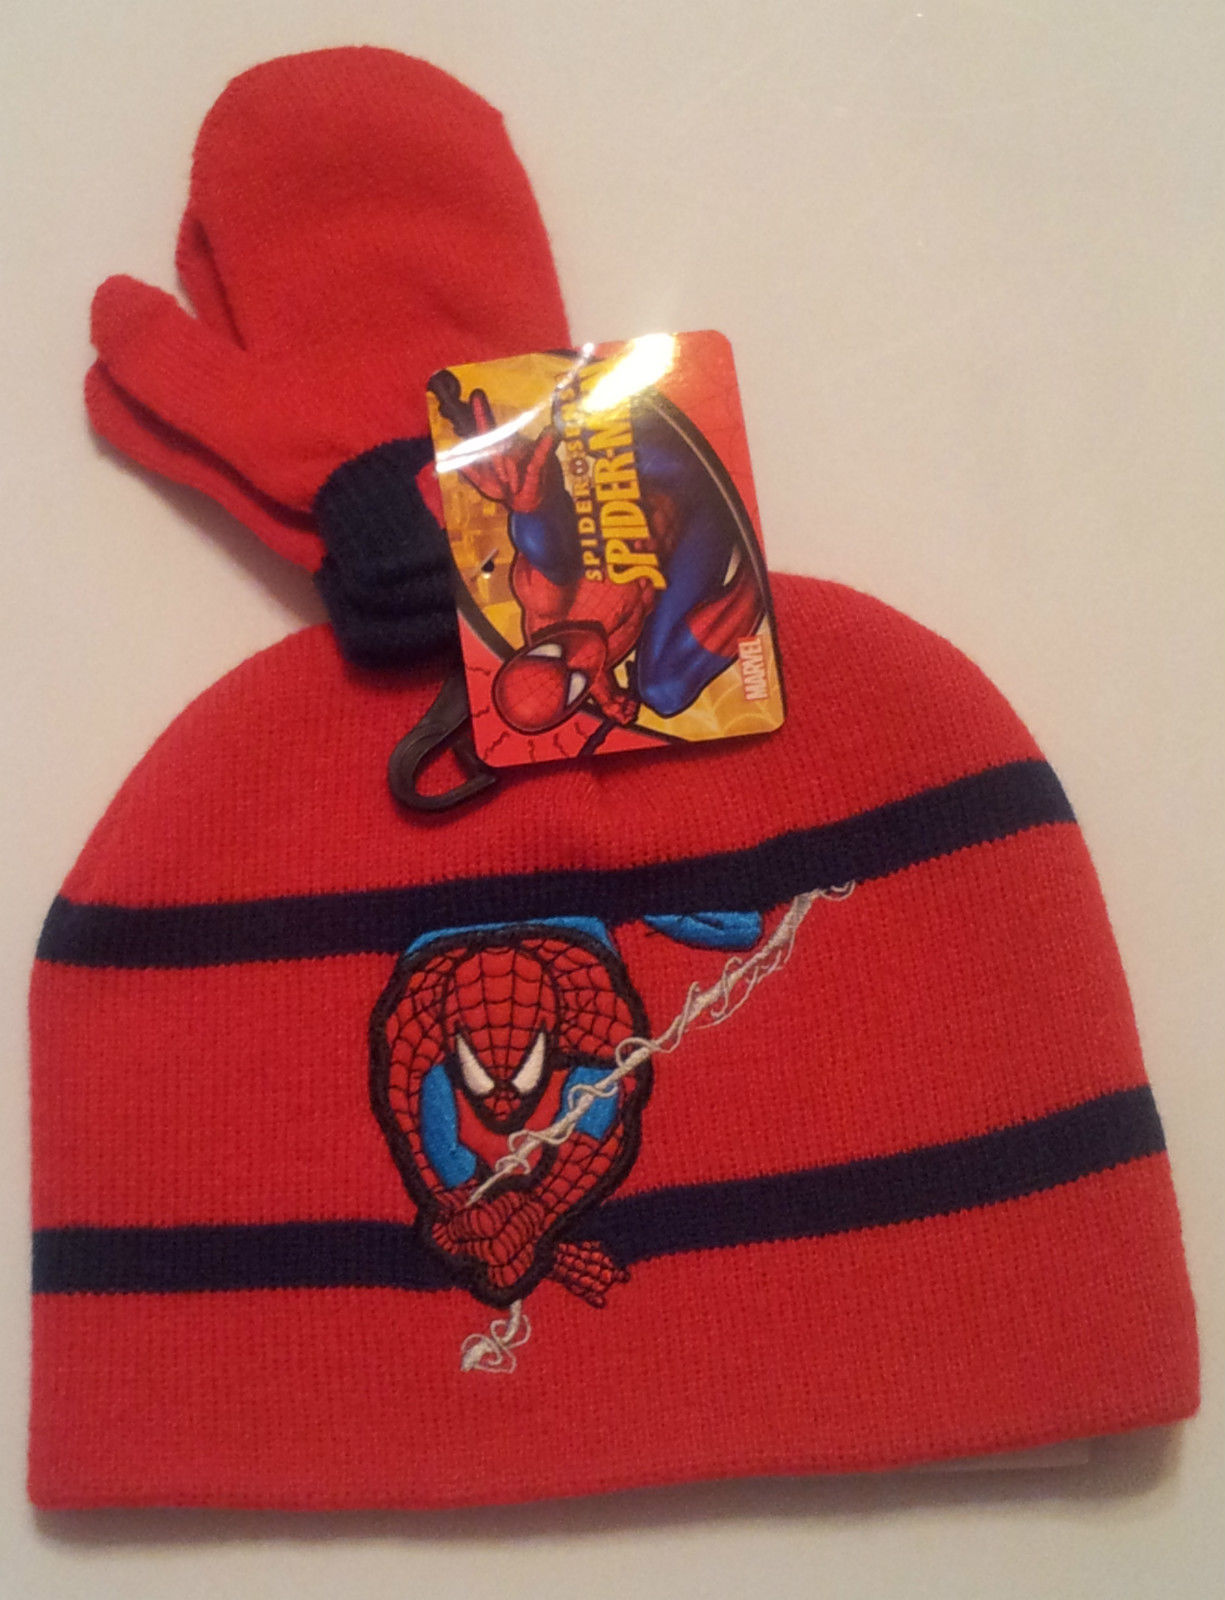 Marvel-toddler-boys - hat-and-mitten-set-red-blue-acrylic